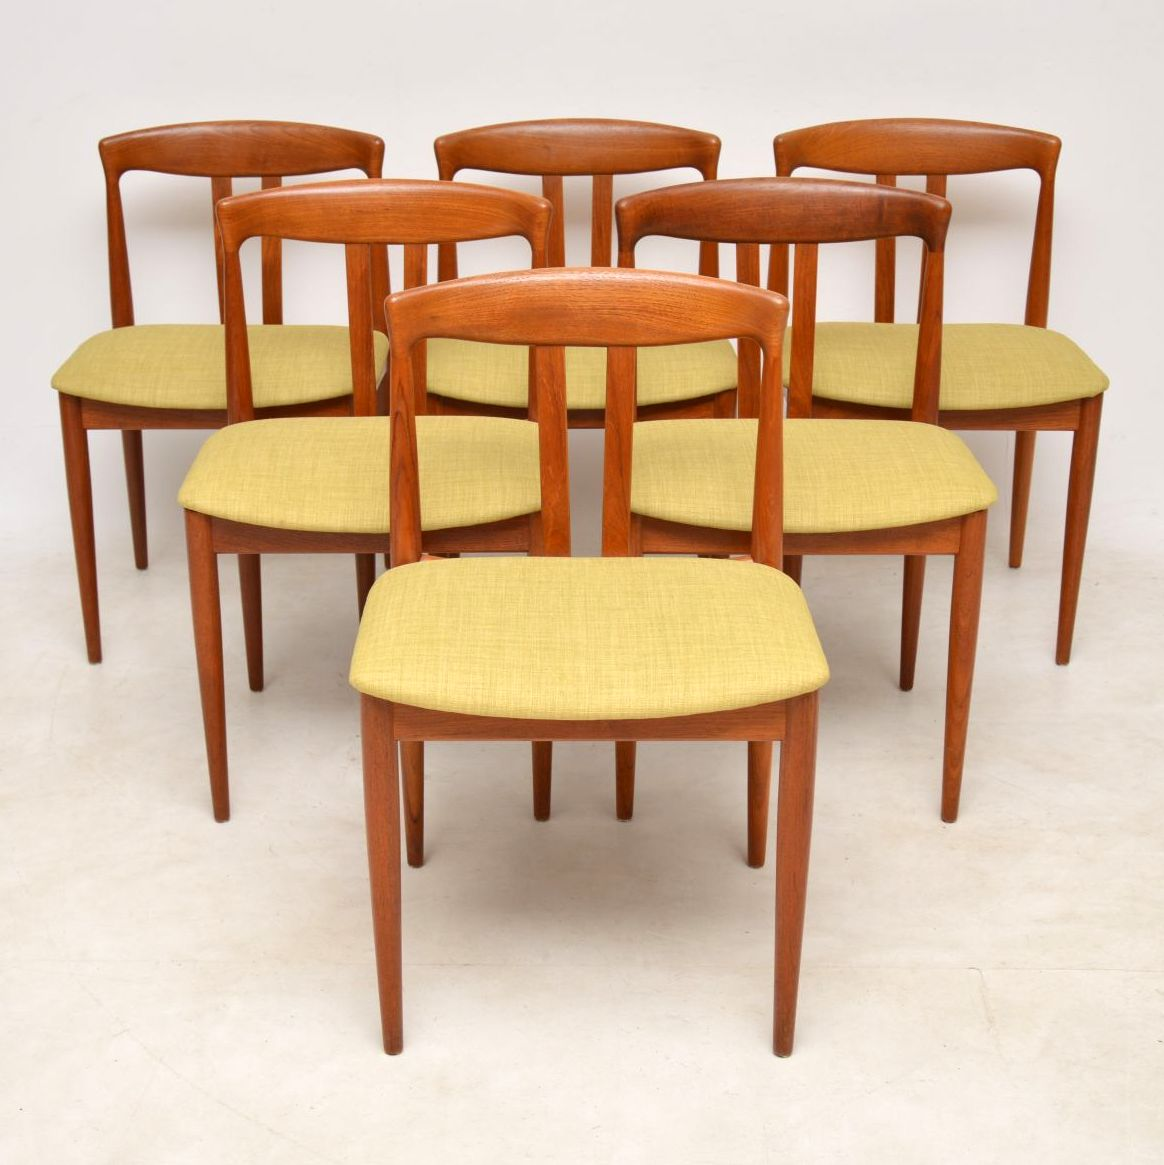 1960 S Vintage Set Of 6 Danish Teak Dining Chairs